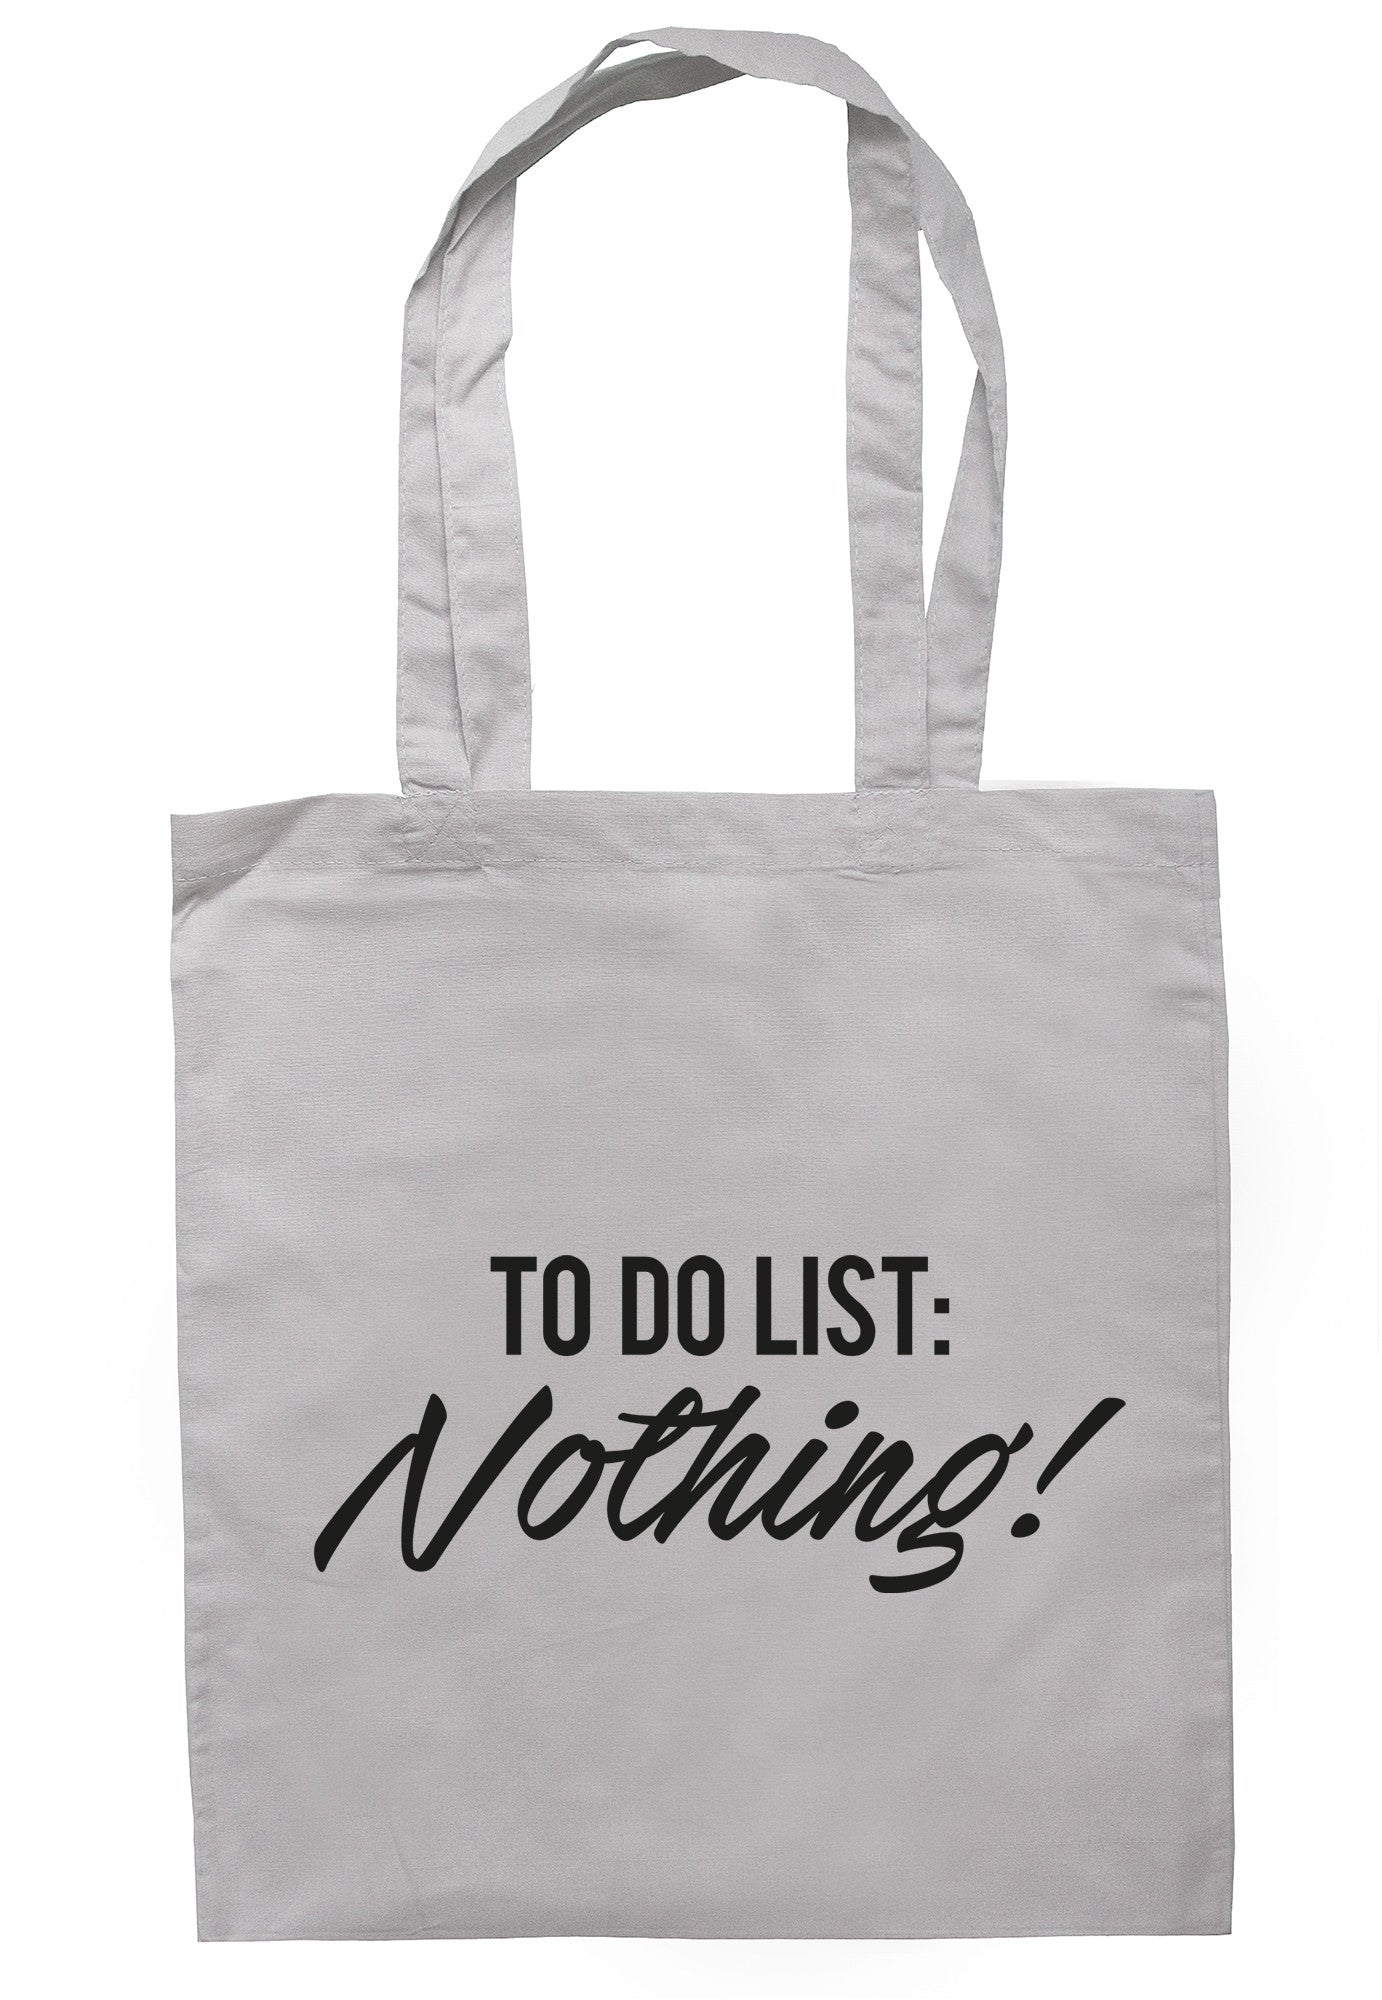 To Do List: Nothing! Tote Bag TB0461 - Illustrated Identity Ltd.